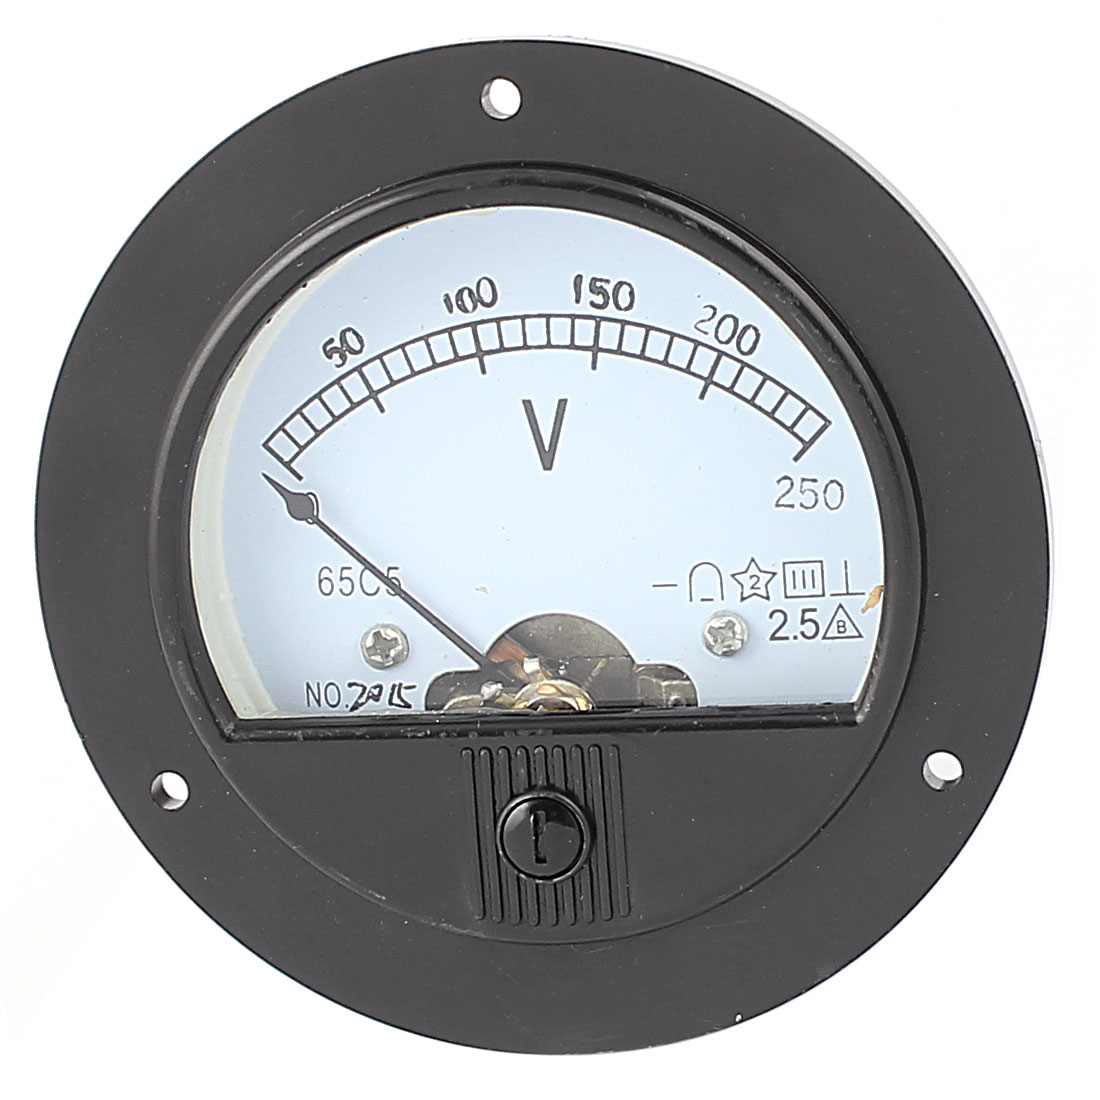 DC 0-250V Analog Panel Voltmeter Voltage Meter Measuring Gauge Class 2.5